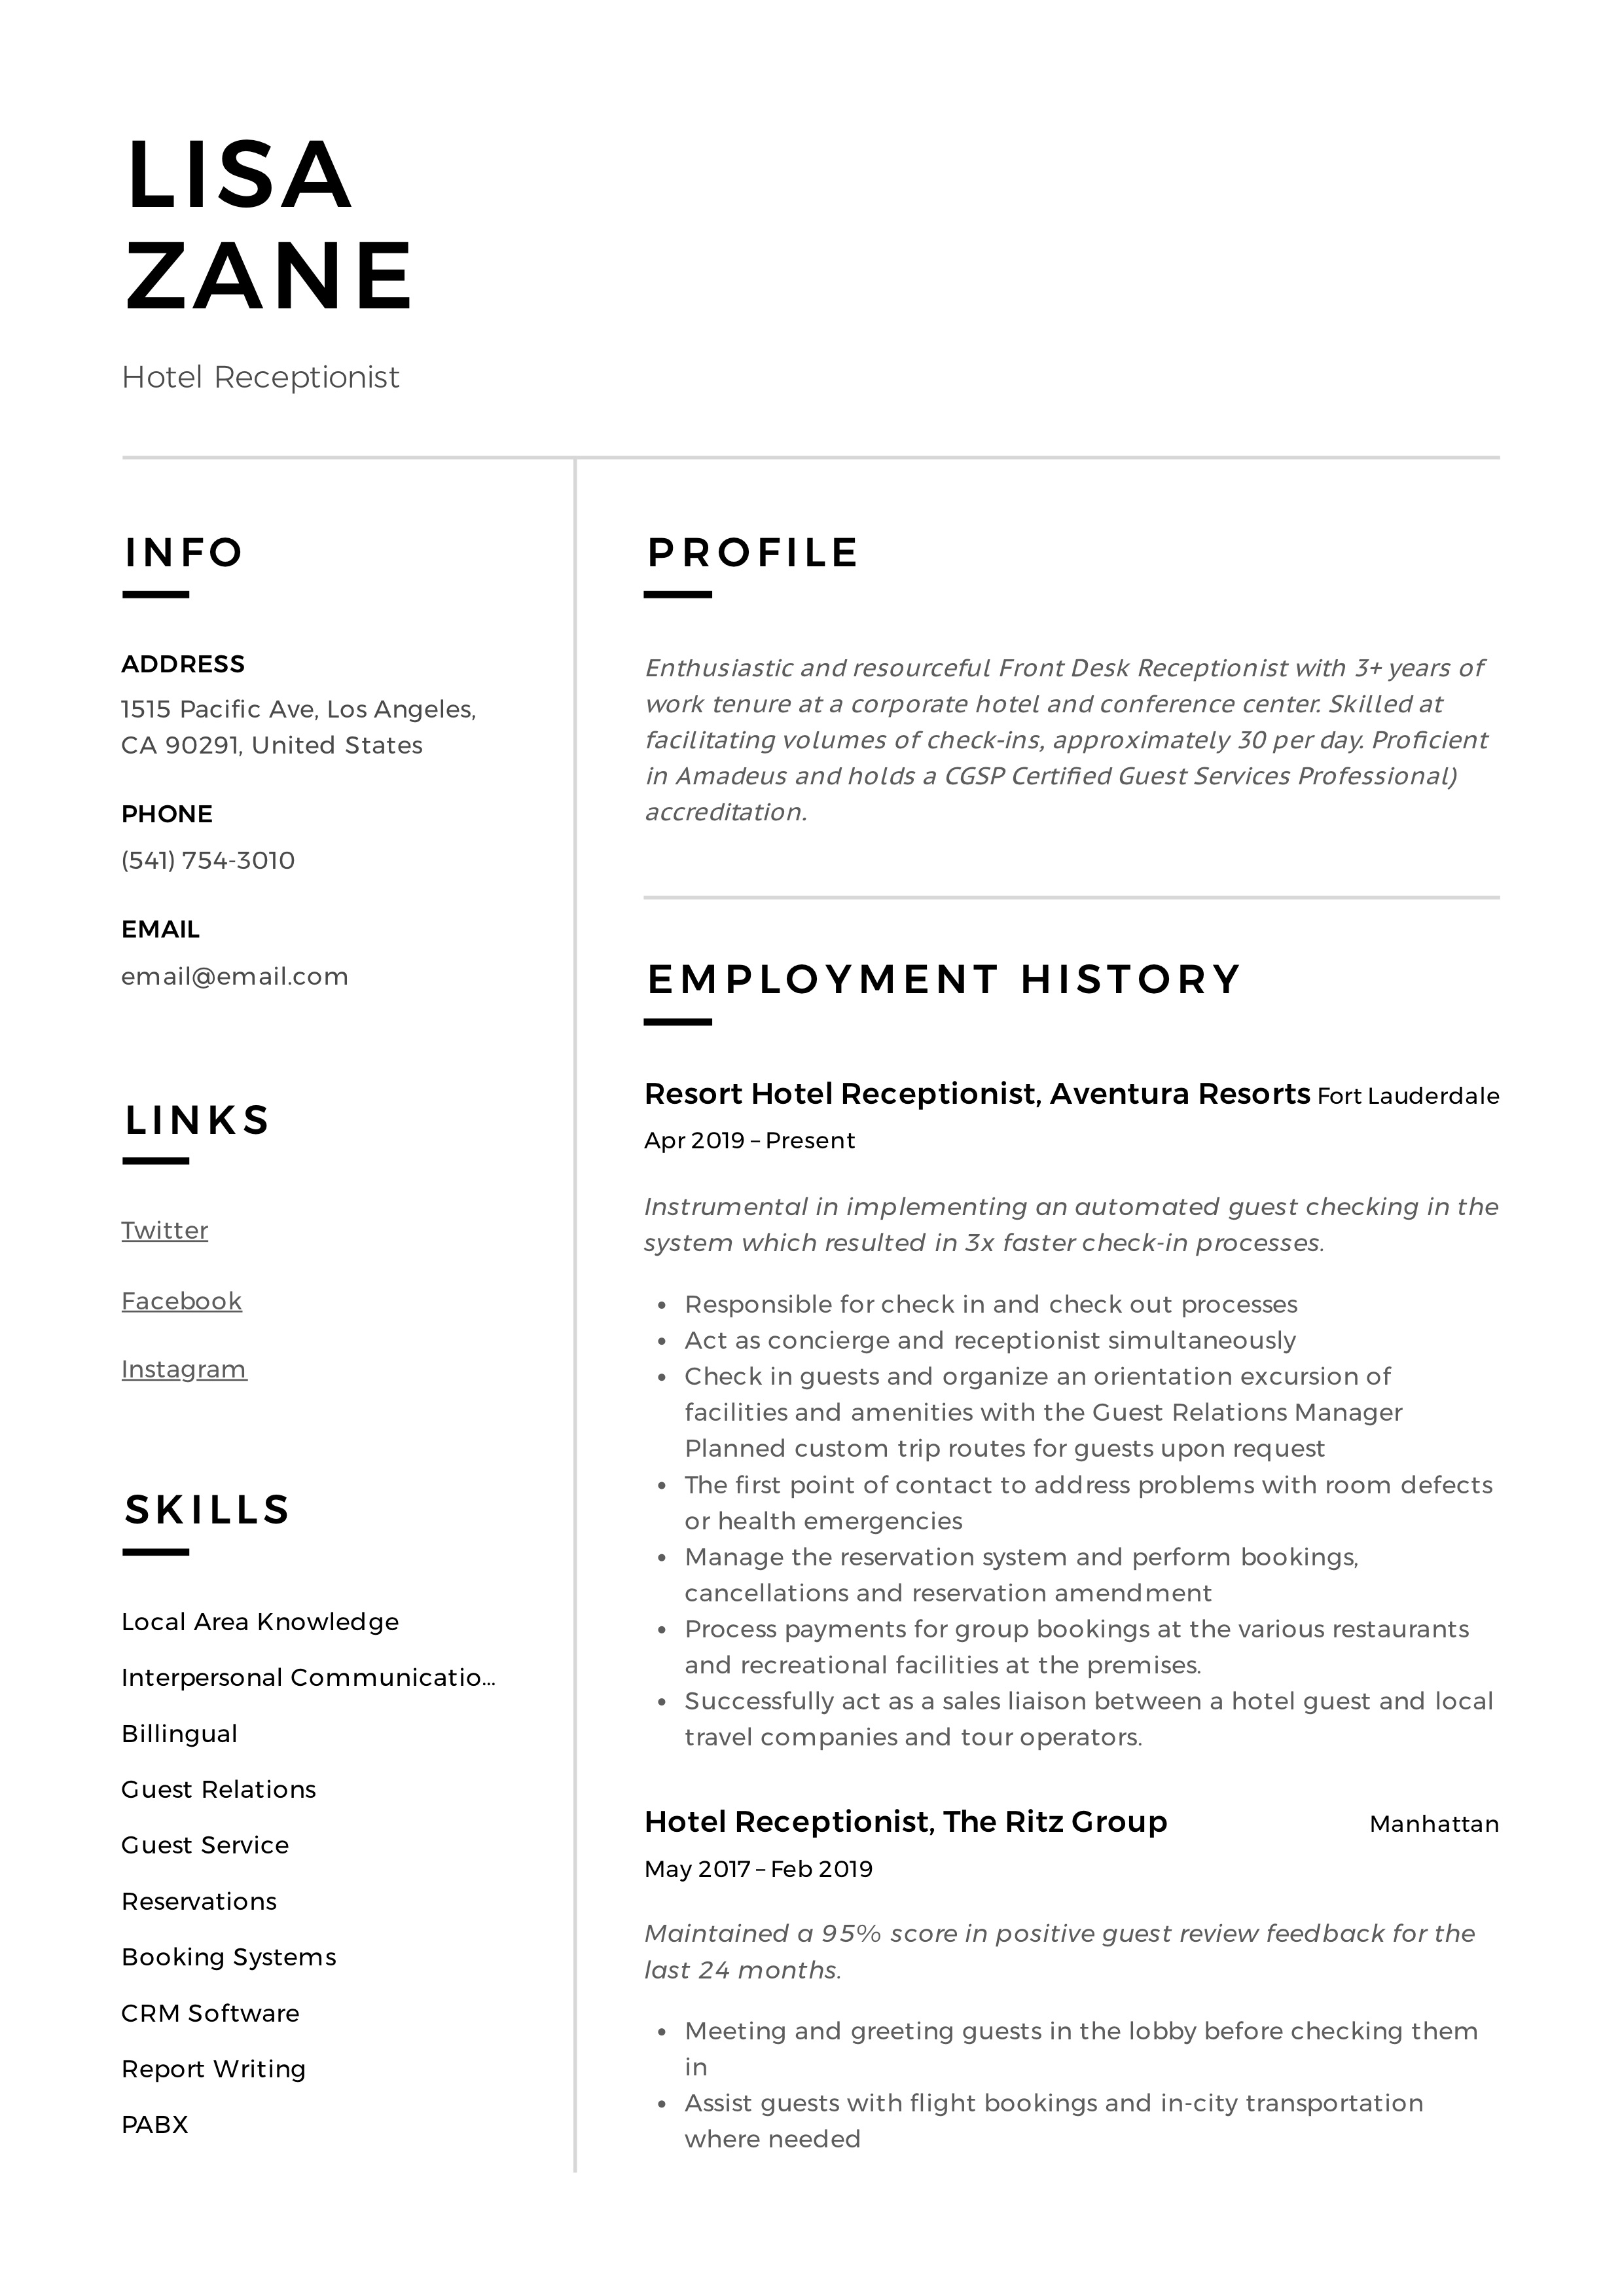 Hotel Receptionist Resume Amp Writing Guide 12 Templates